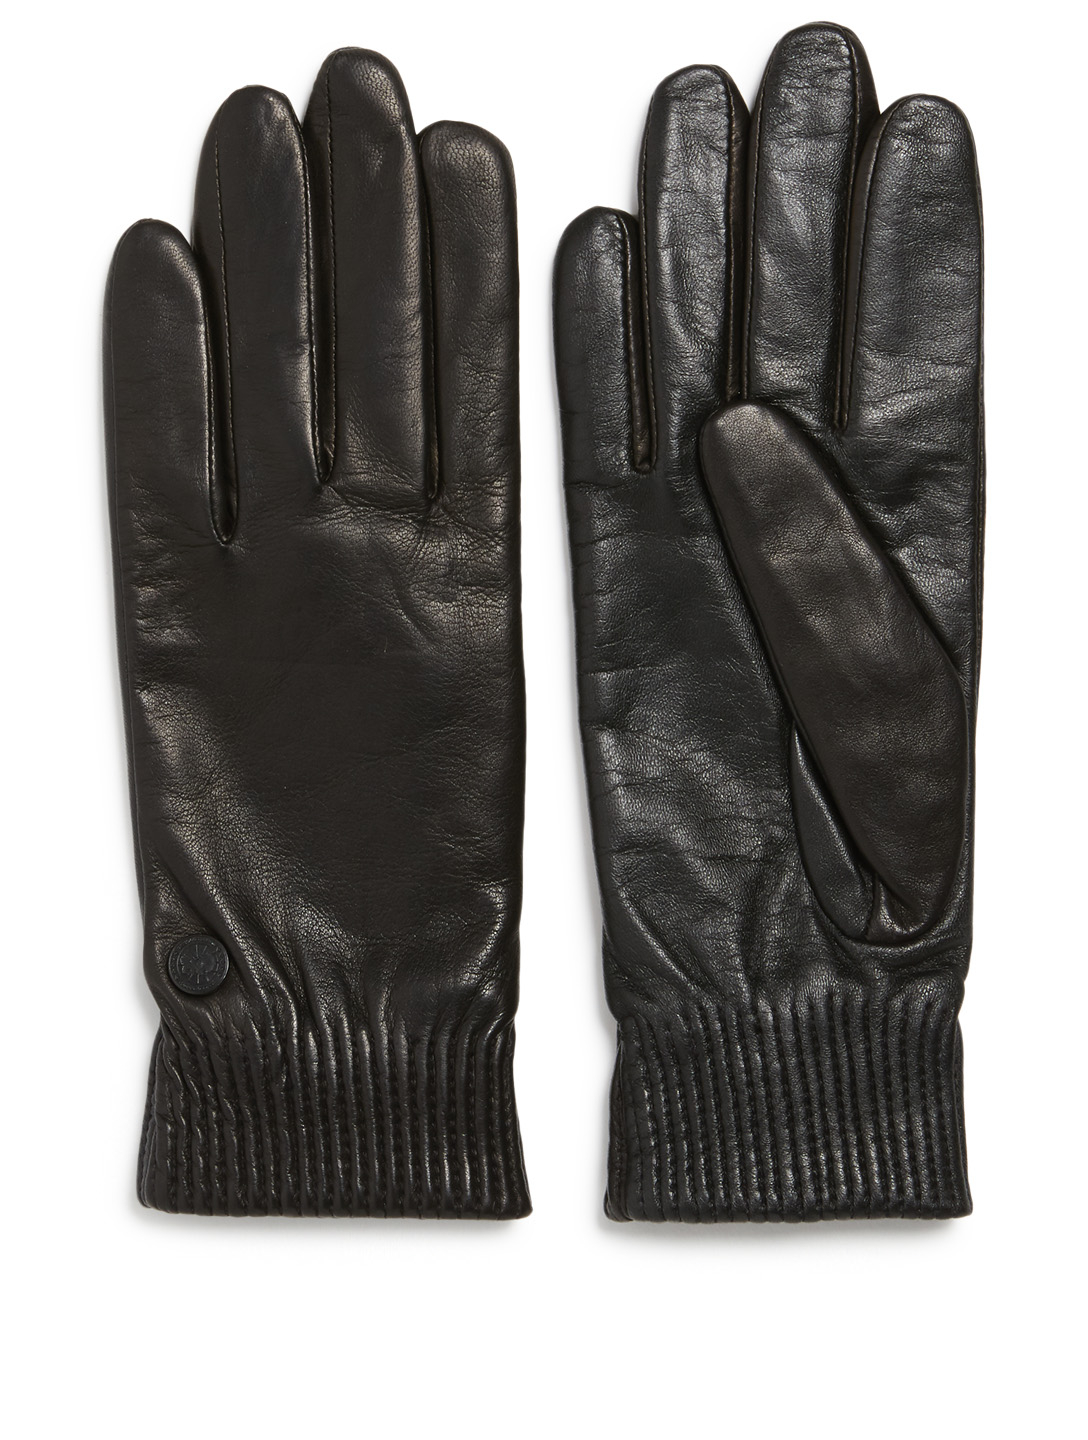 CANADA GOOSE Ribbed Leather Gloves Women's Black